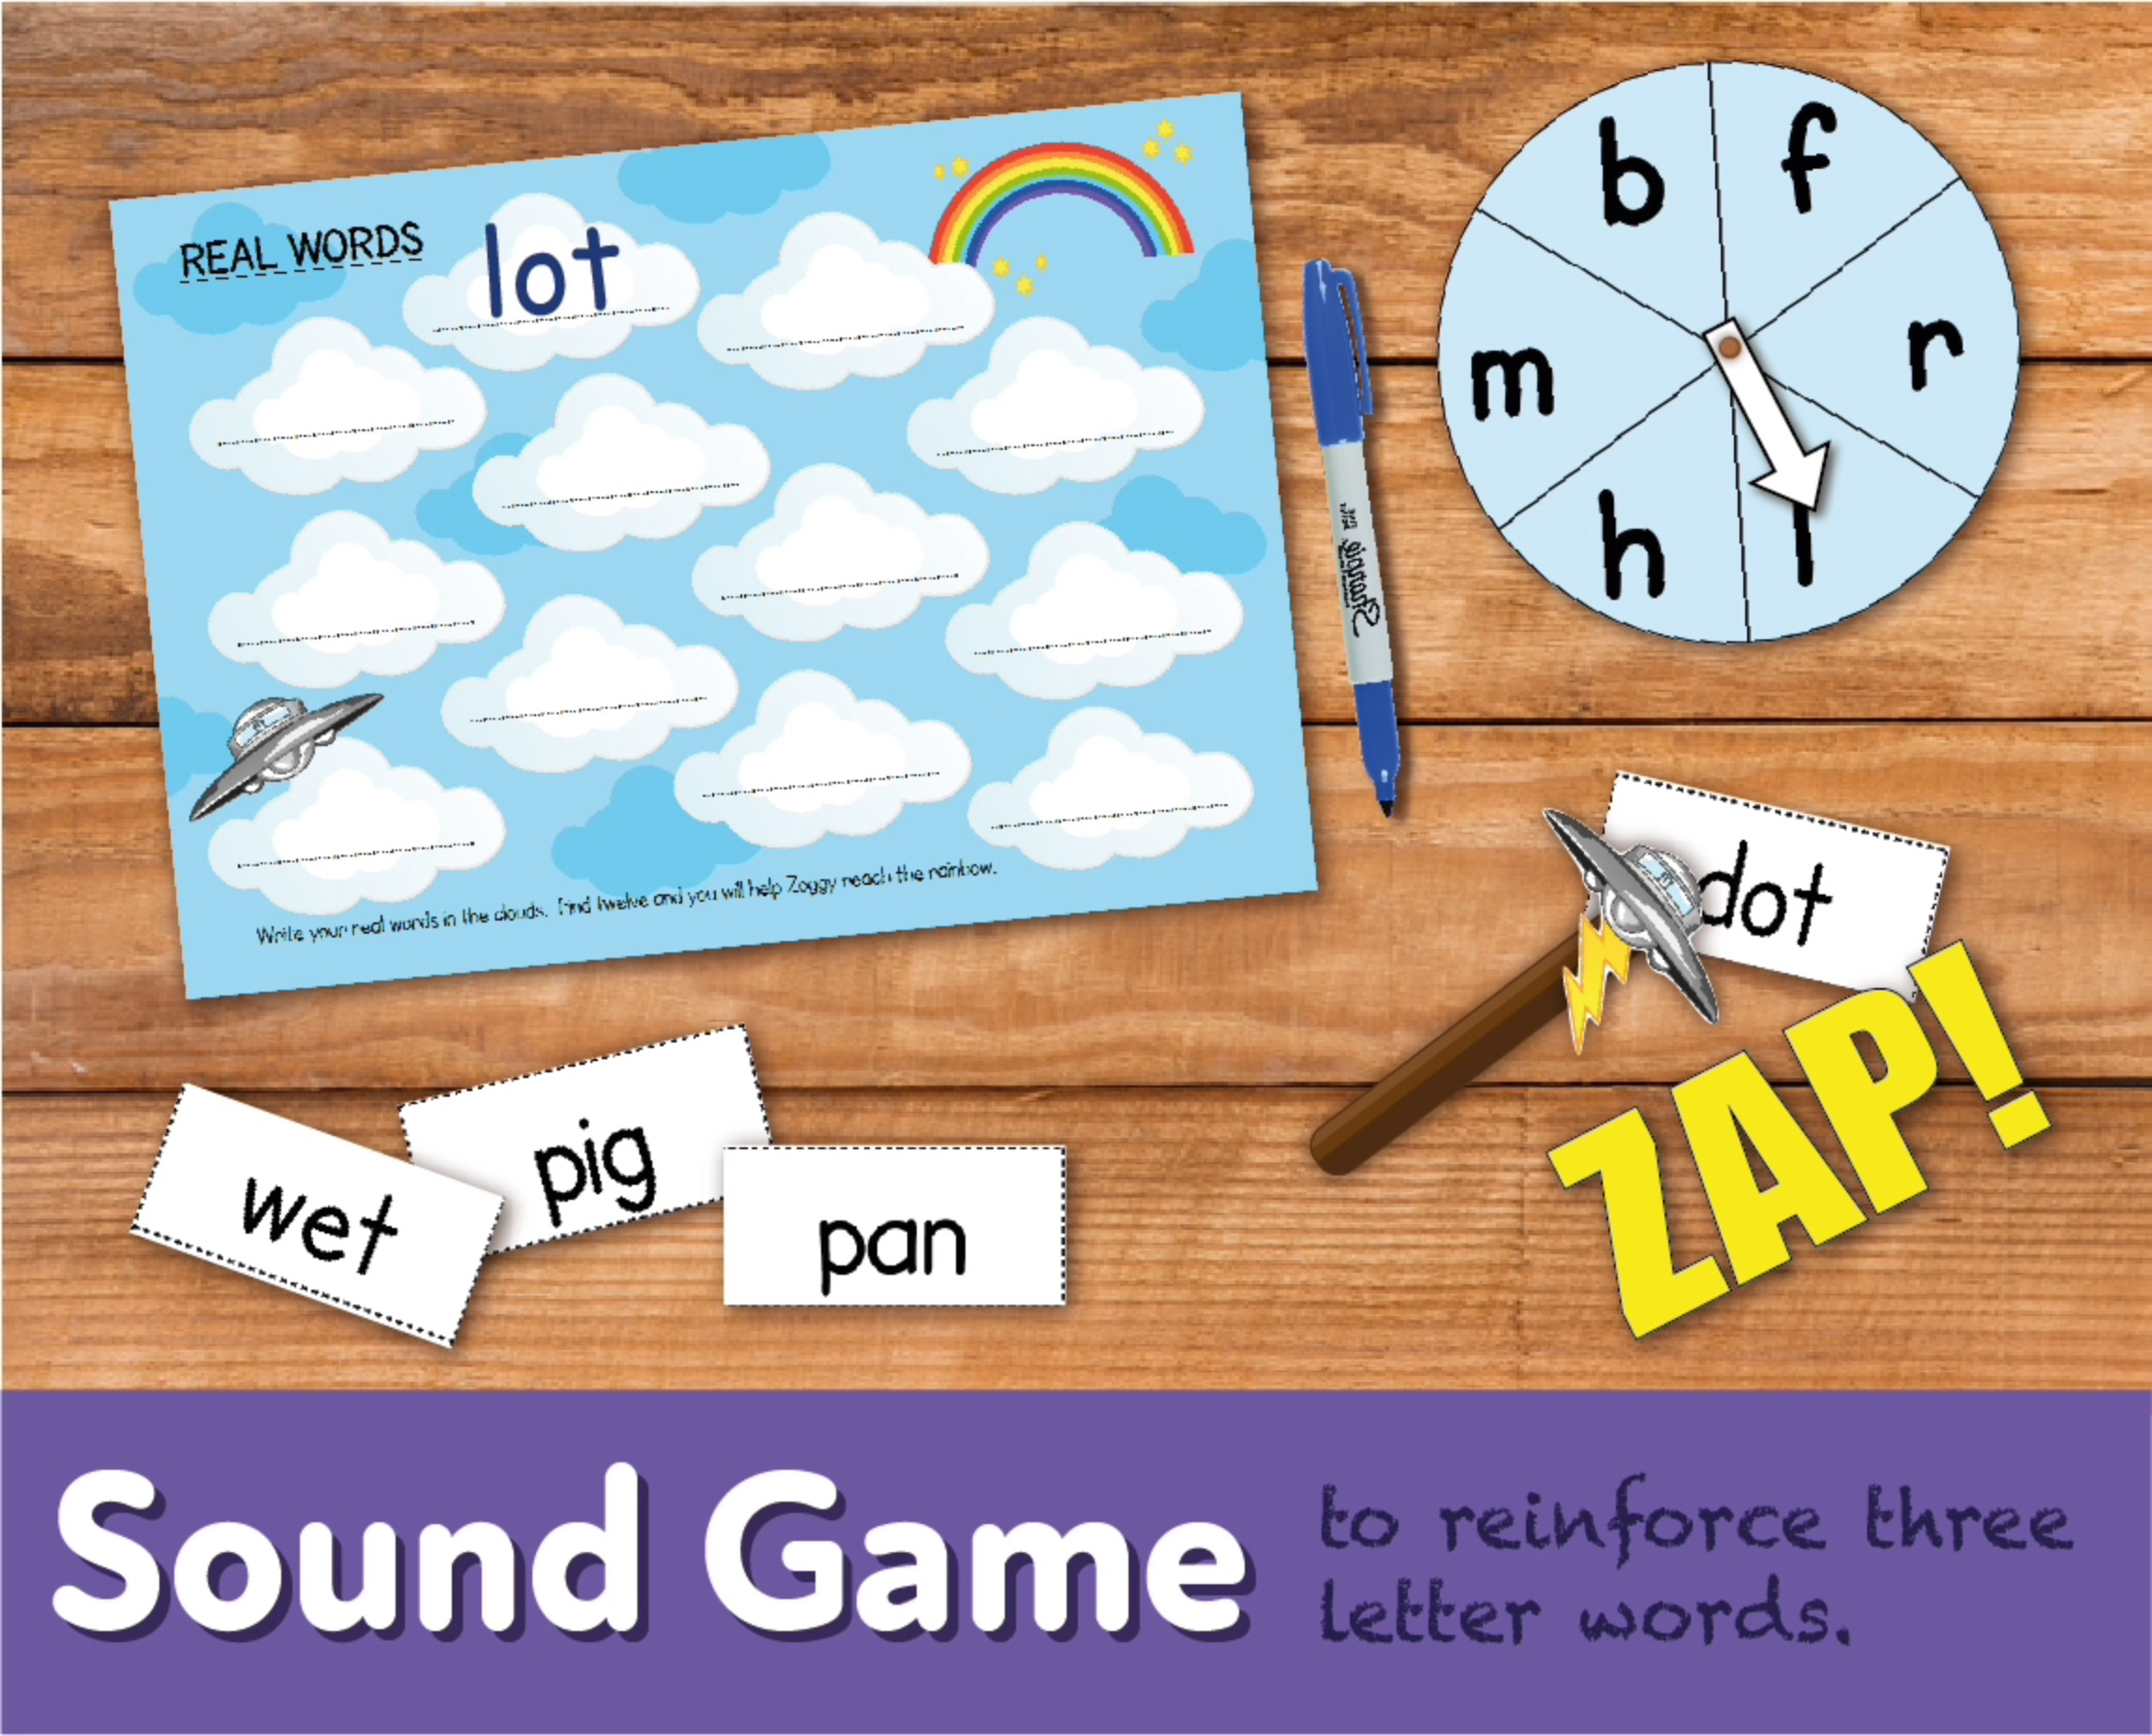 Play A Sound Game 'Zap' To Reinforce Three Letter Words (4-7 years)